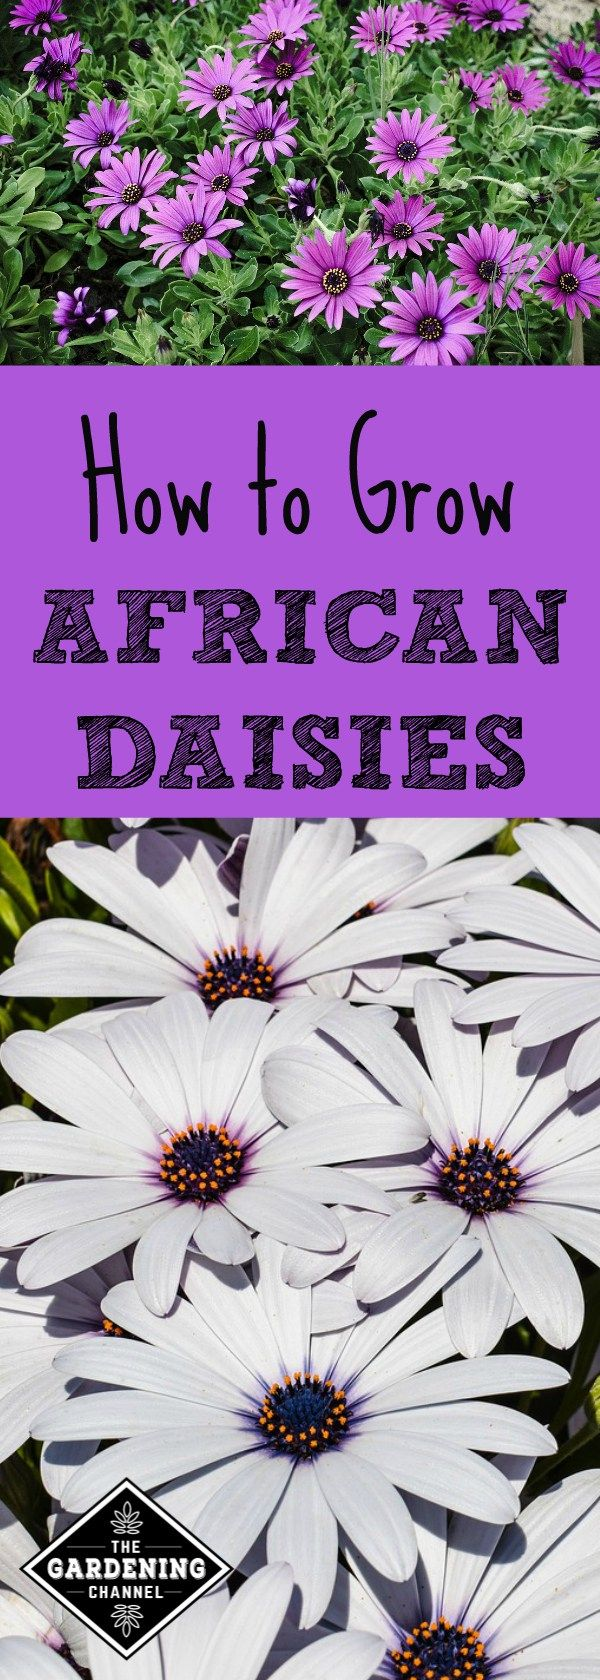 African Daisies are easy to grow if planted in the correct location. Learn more favorable growing conditions for African Daisies and how to care for them.